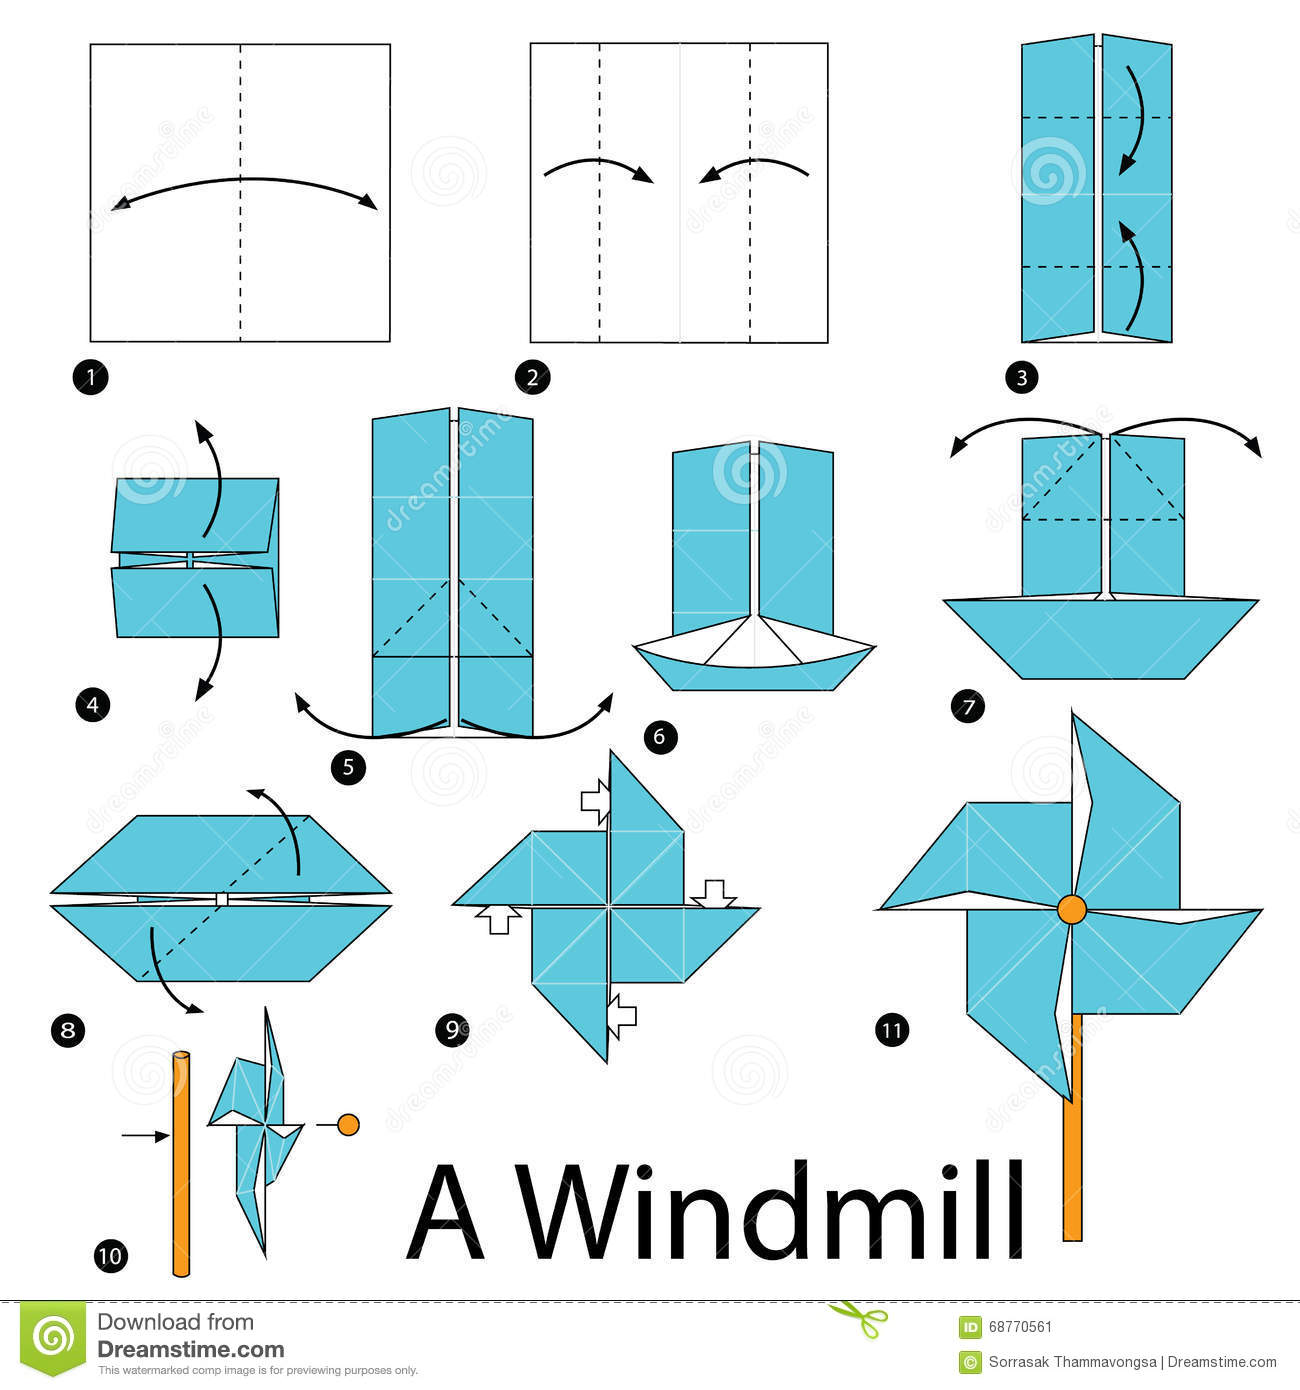 instructions tape par tape comment faire origami un moulin vent illustration de vecteur. Black Bedroom Furniture Sets. Home Design Ideas